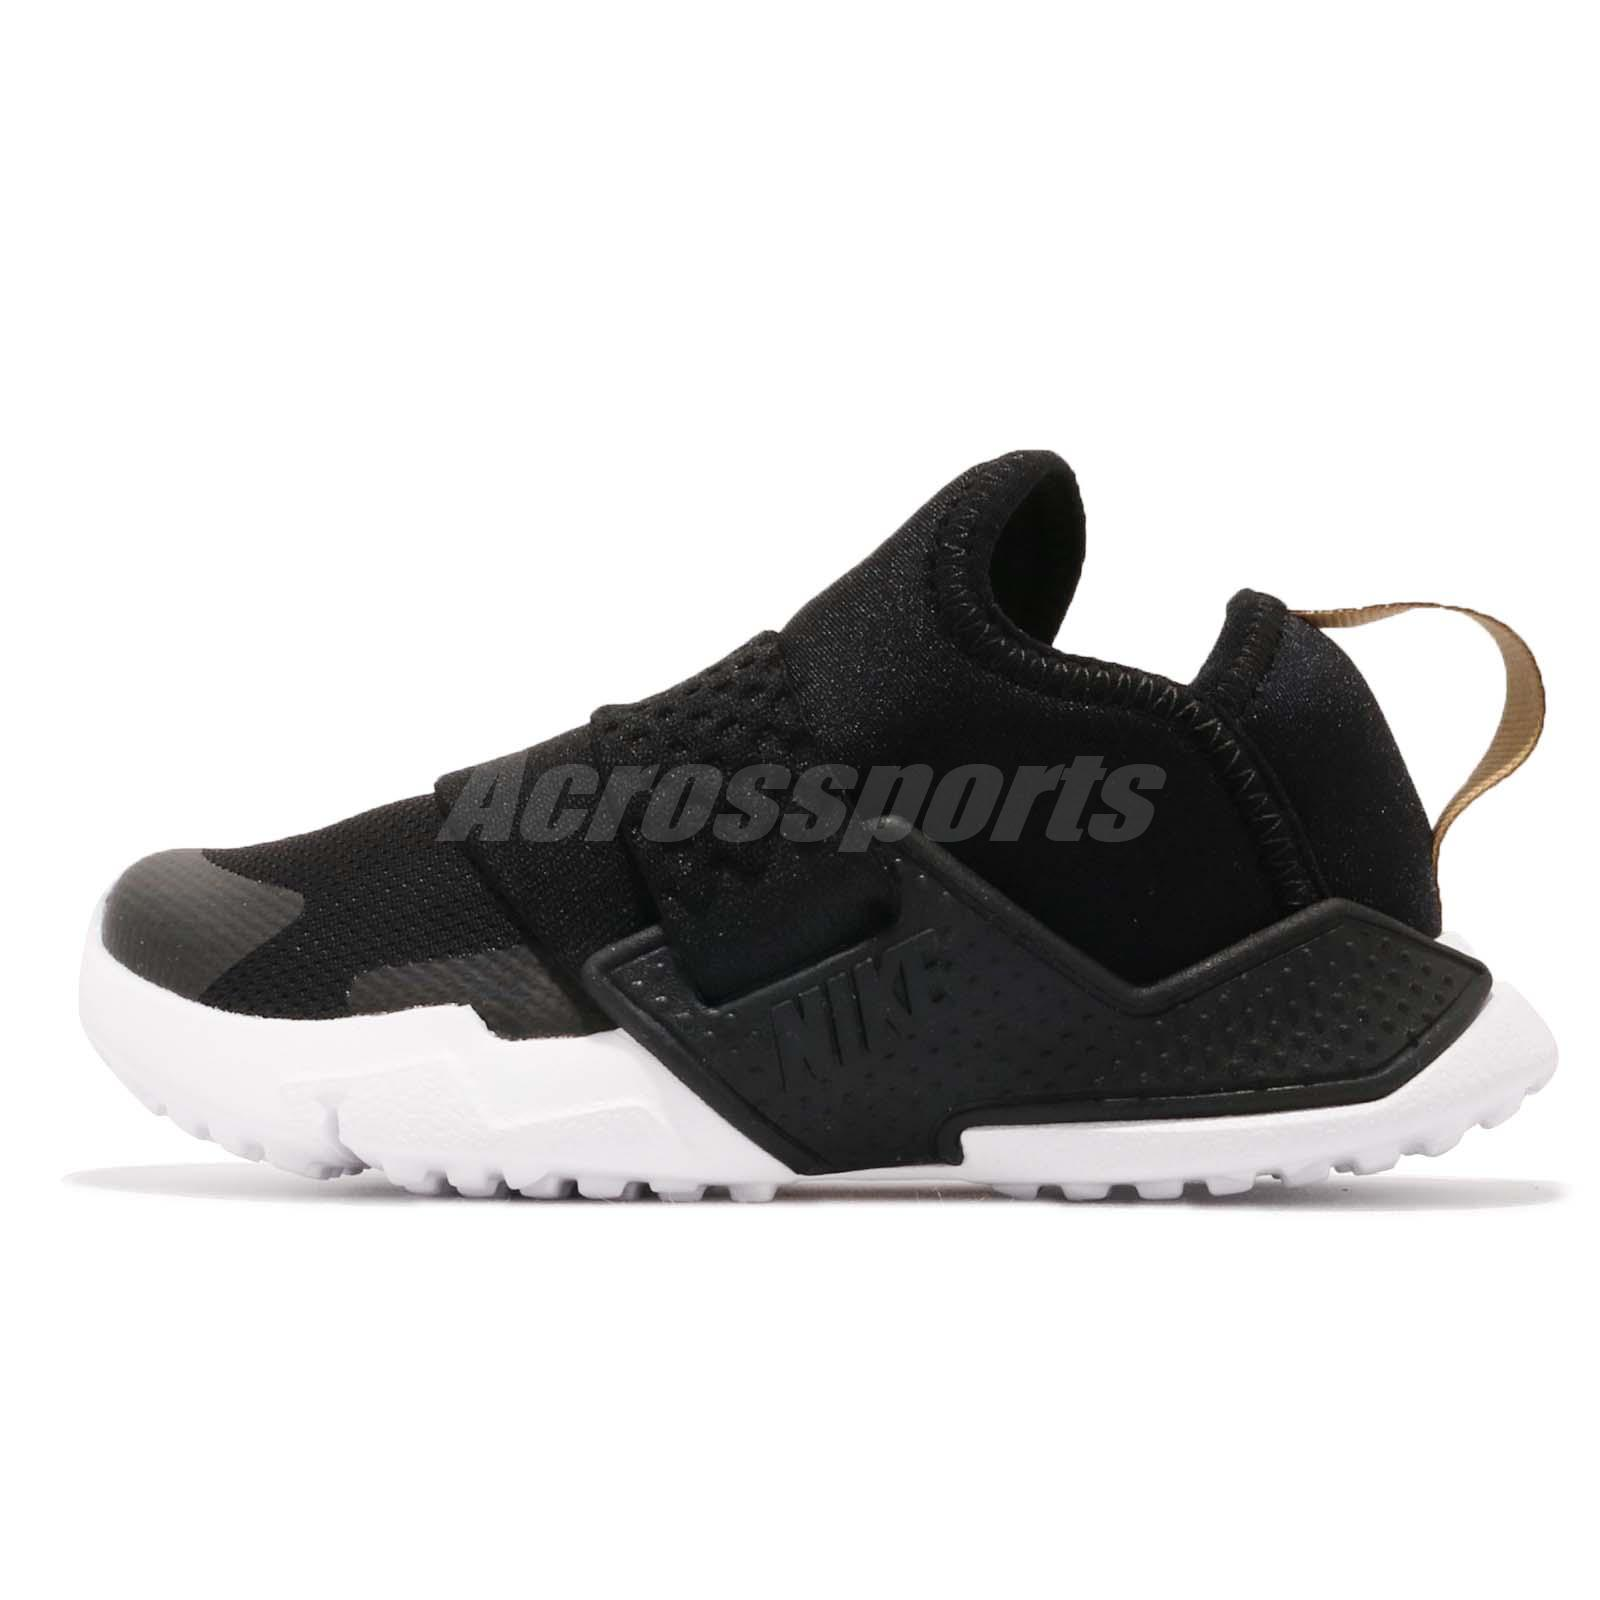 ... discount code for nike huarache extreme td black gold white toddler  infant baby shoes ah7827 007 ffe510001